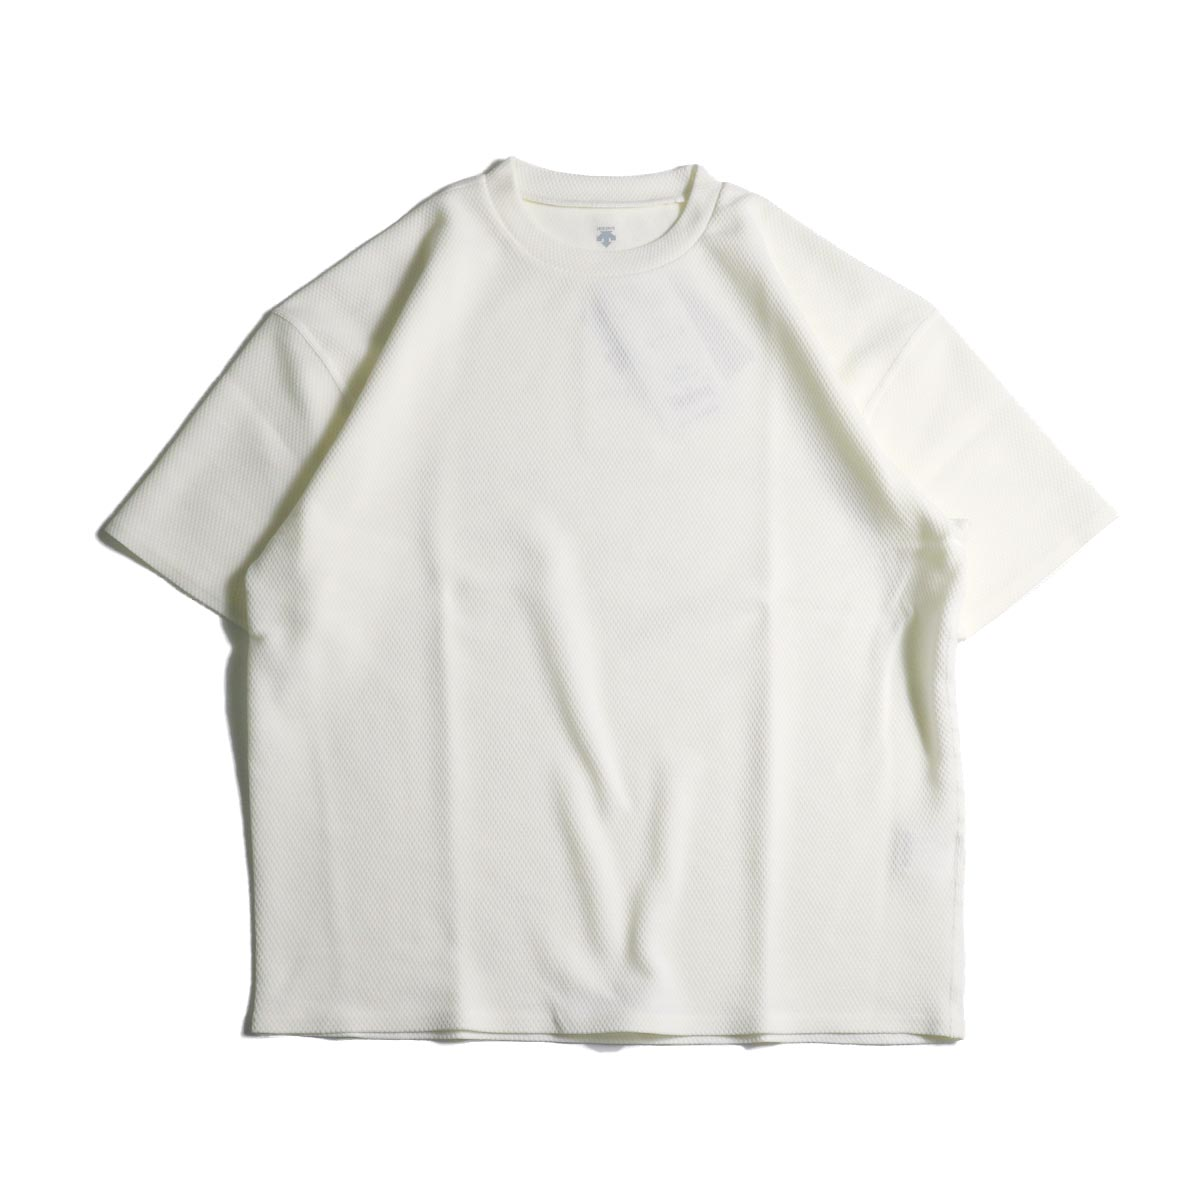 (Ladie's) DESCENTE PAUSE / THERMAL H/S T-SHIRT (White)